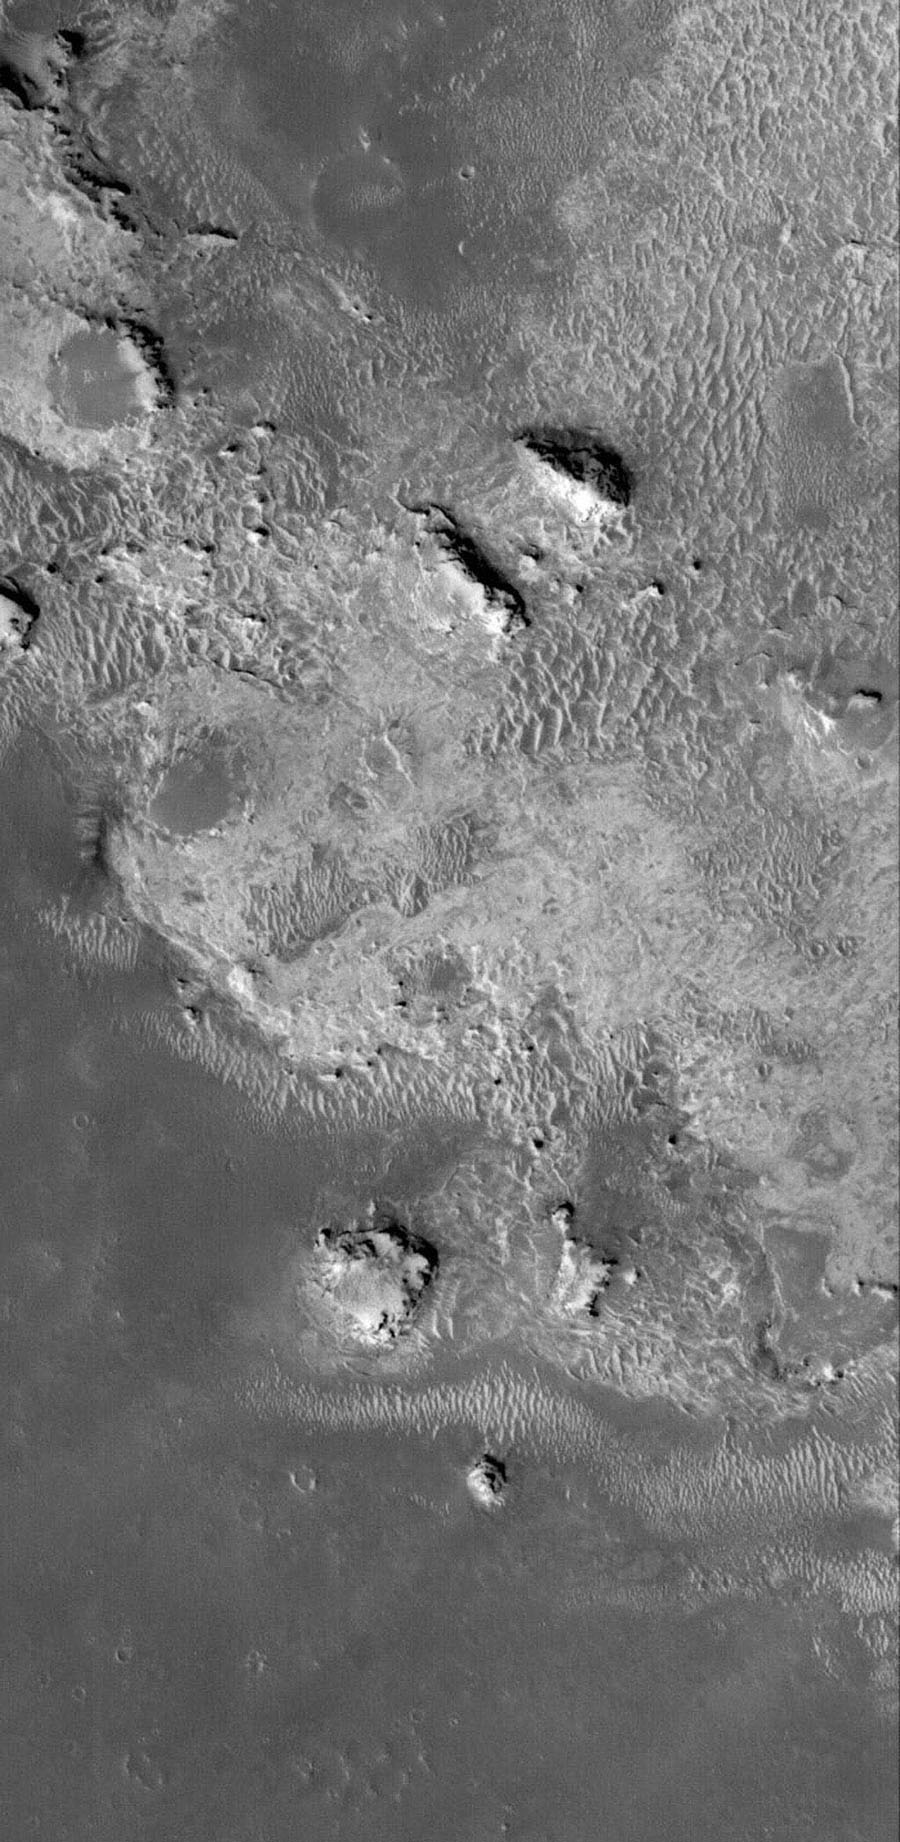 NASA's Mars Global Surveyor shows light-toned rock outcrops in northeastern Sinus Meridiani on Mars. The entire northern Sinus Meridiani region has vast exposures of light-toned, layered rock.